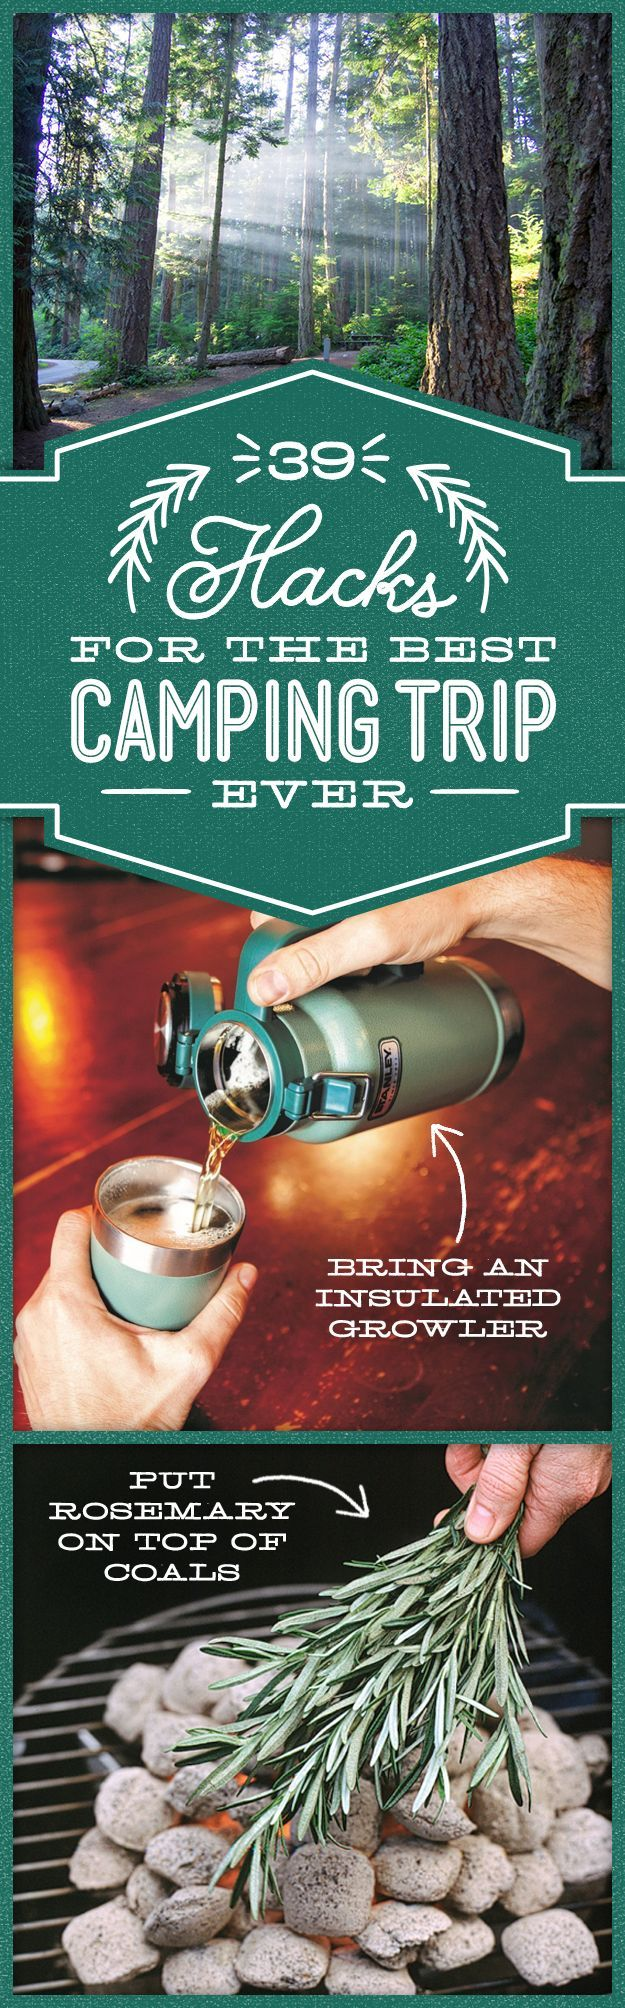 "Some useful camp hacks for the more ""chill"" outings with your crew. Just remember: pack it out!"